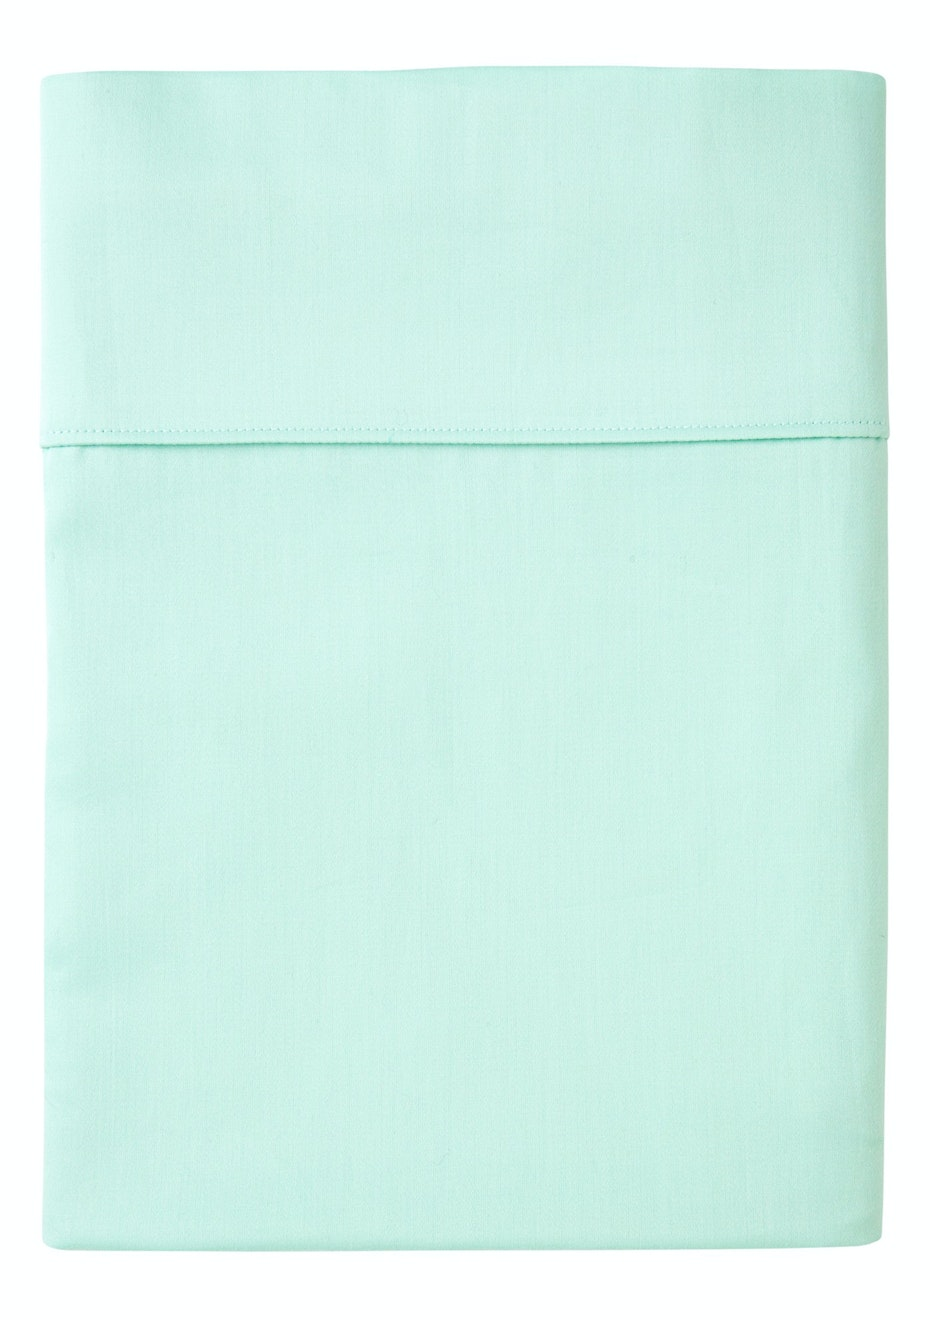 Goosebumps - Flat Sheet - Double - Mint Plain